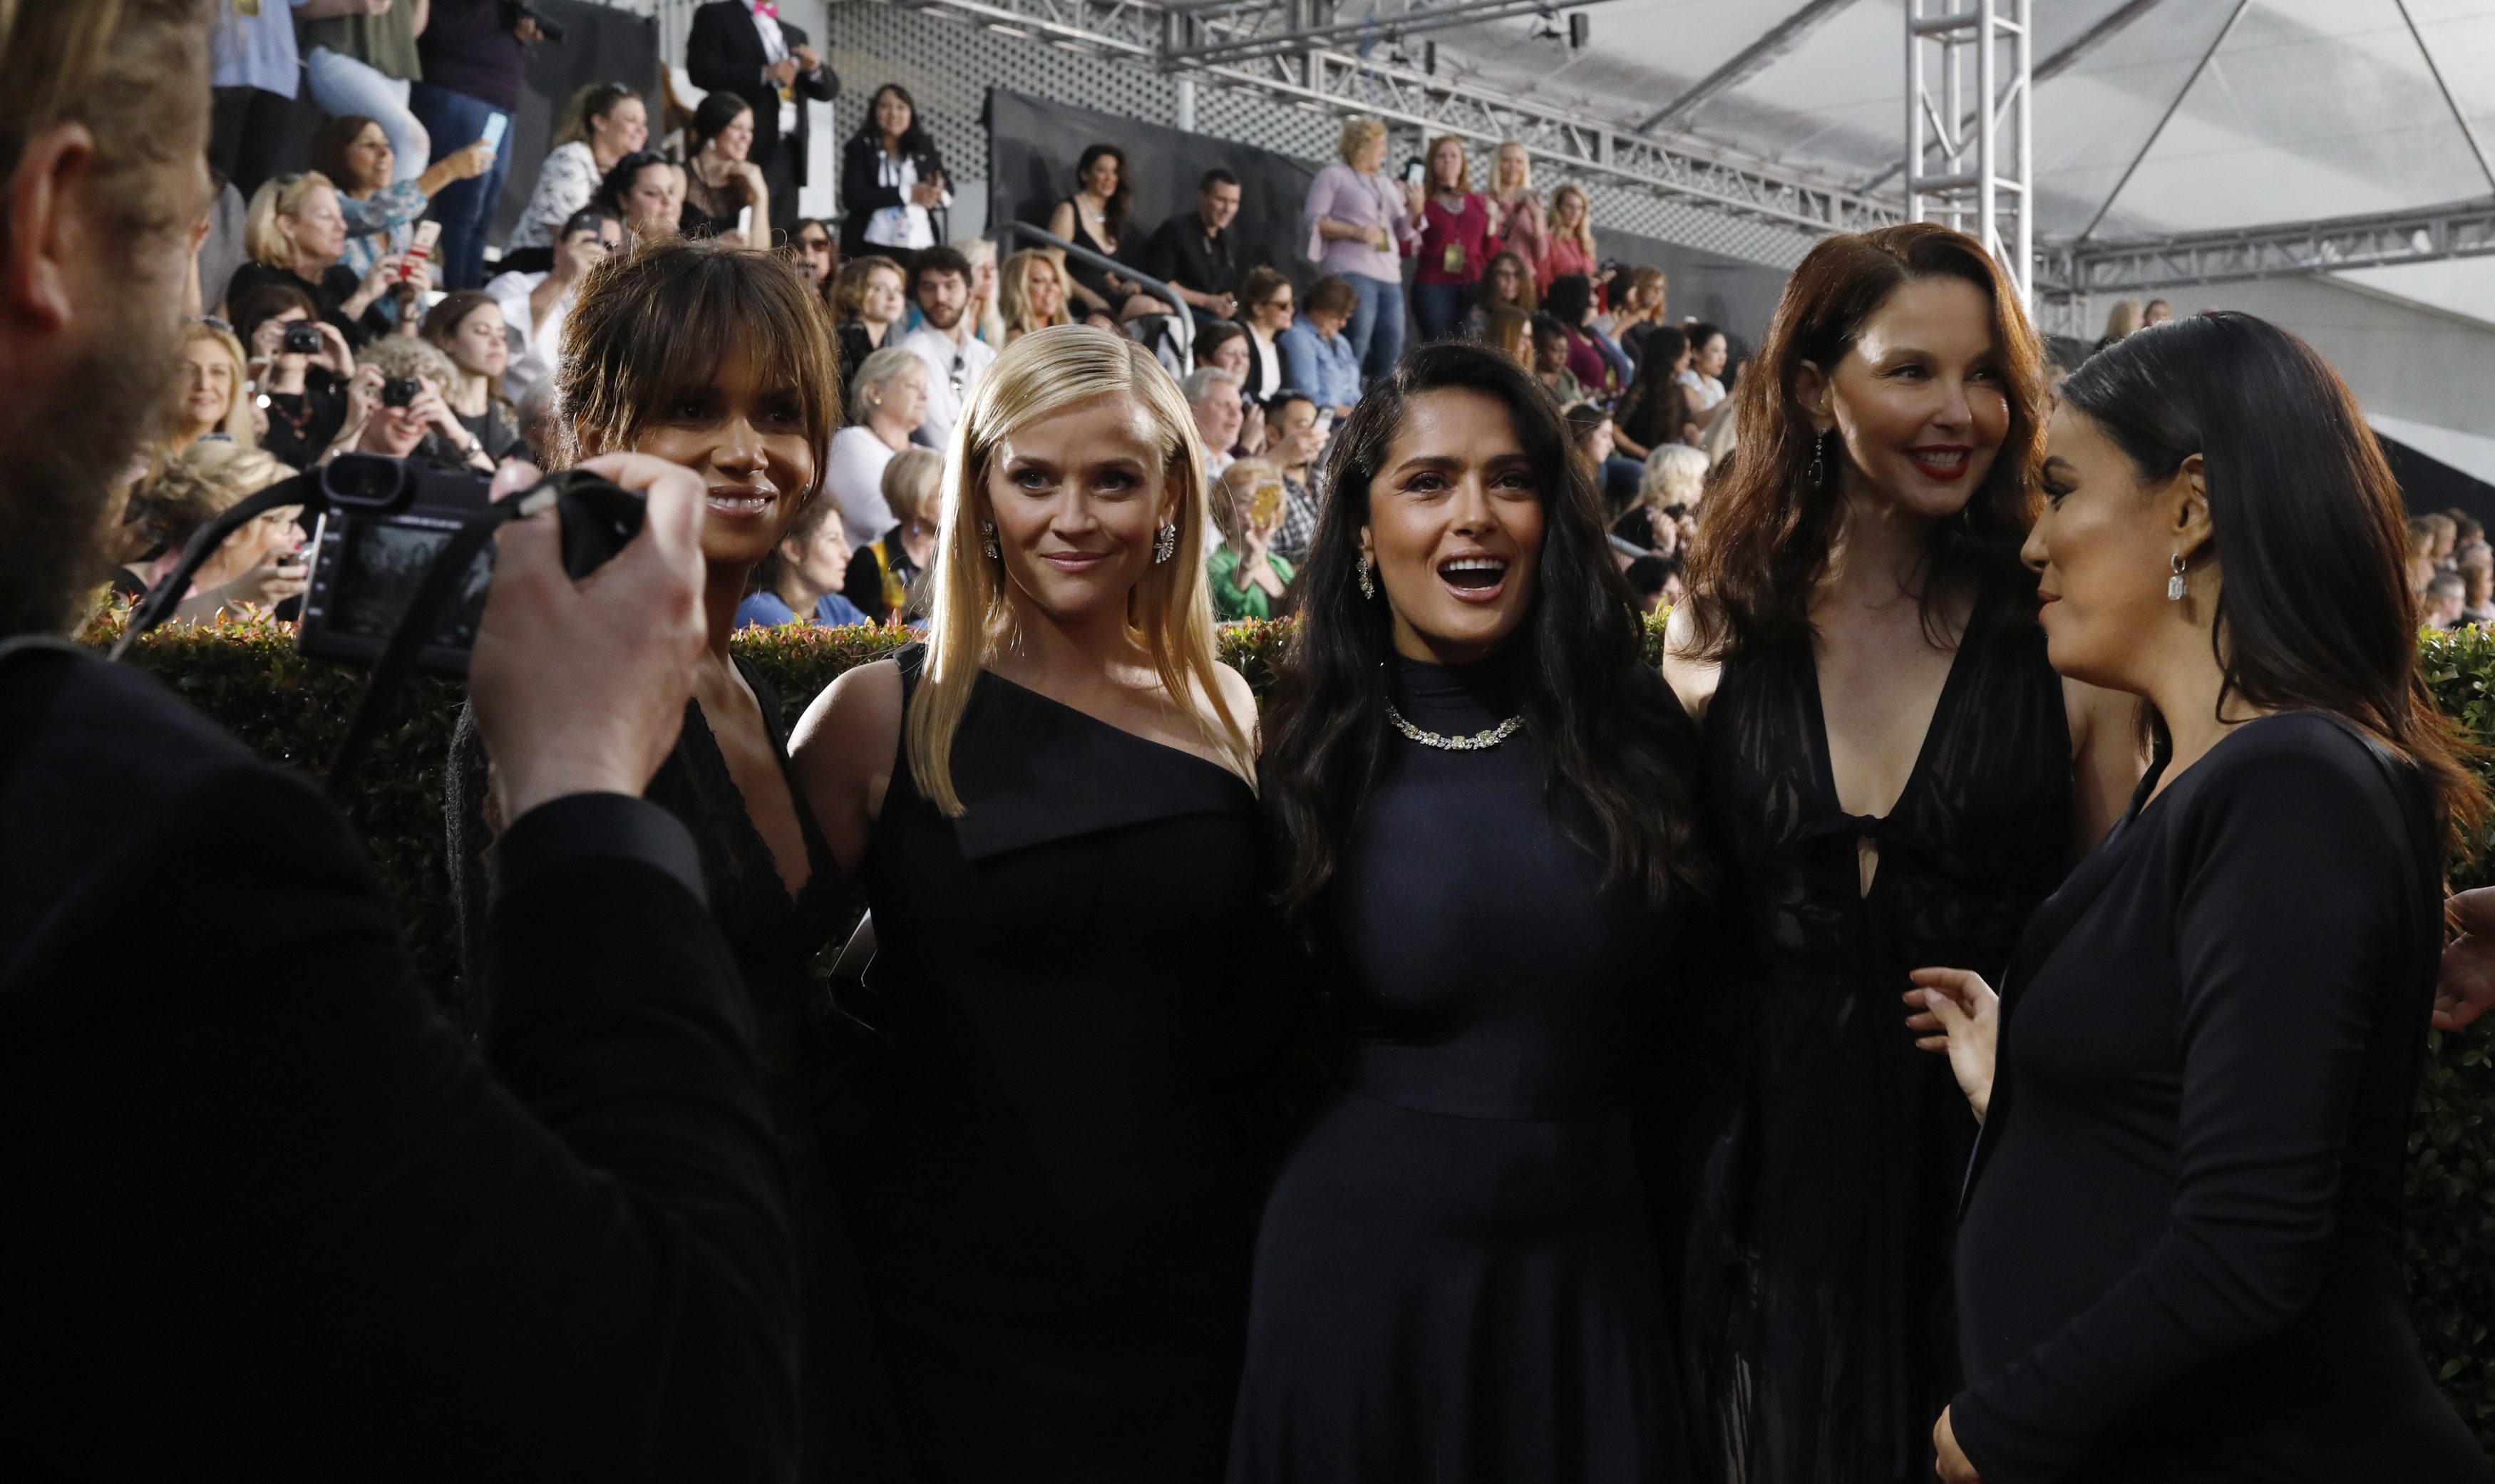 75th Golden Globe Awards – Arrivals – Beverly Hills, California, U.S., 07/01/2018 – (L-R) Actresses Halle Berry, Reese Witherspoon, Salma Hayek, Ashley Judd and Eva Longoria. REUTERS/Mario Anzuoni - HP1EE180308L2